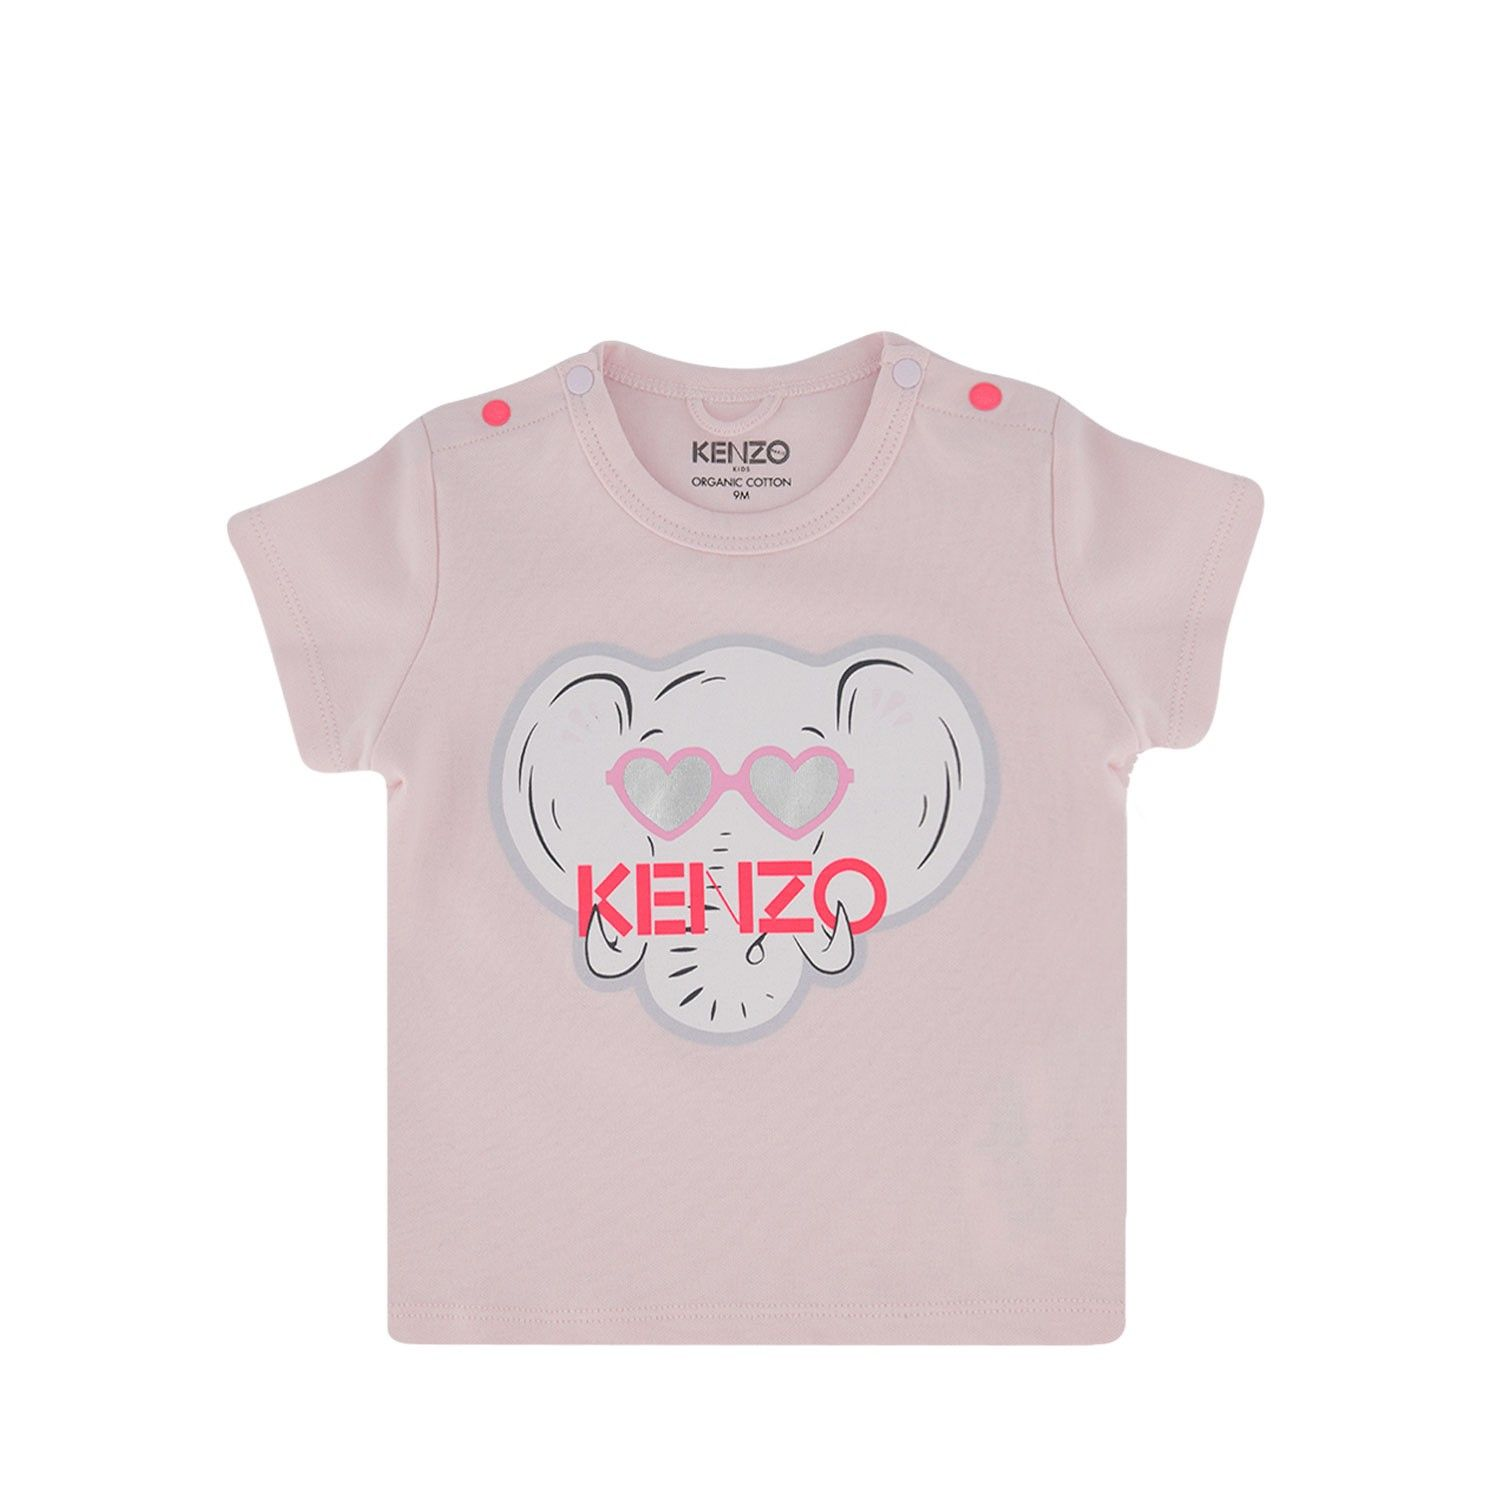 Picture of Kenzo 10003 baby shirt light pink